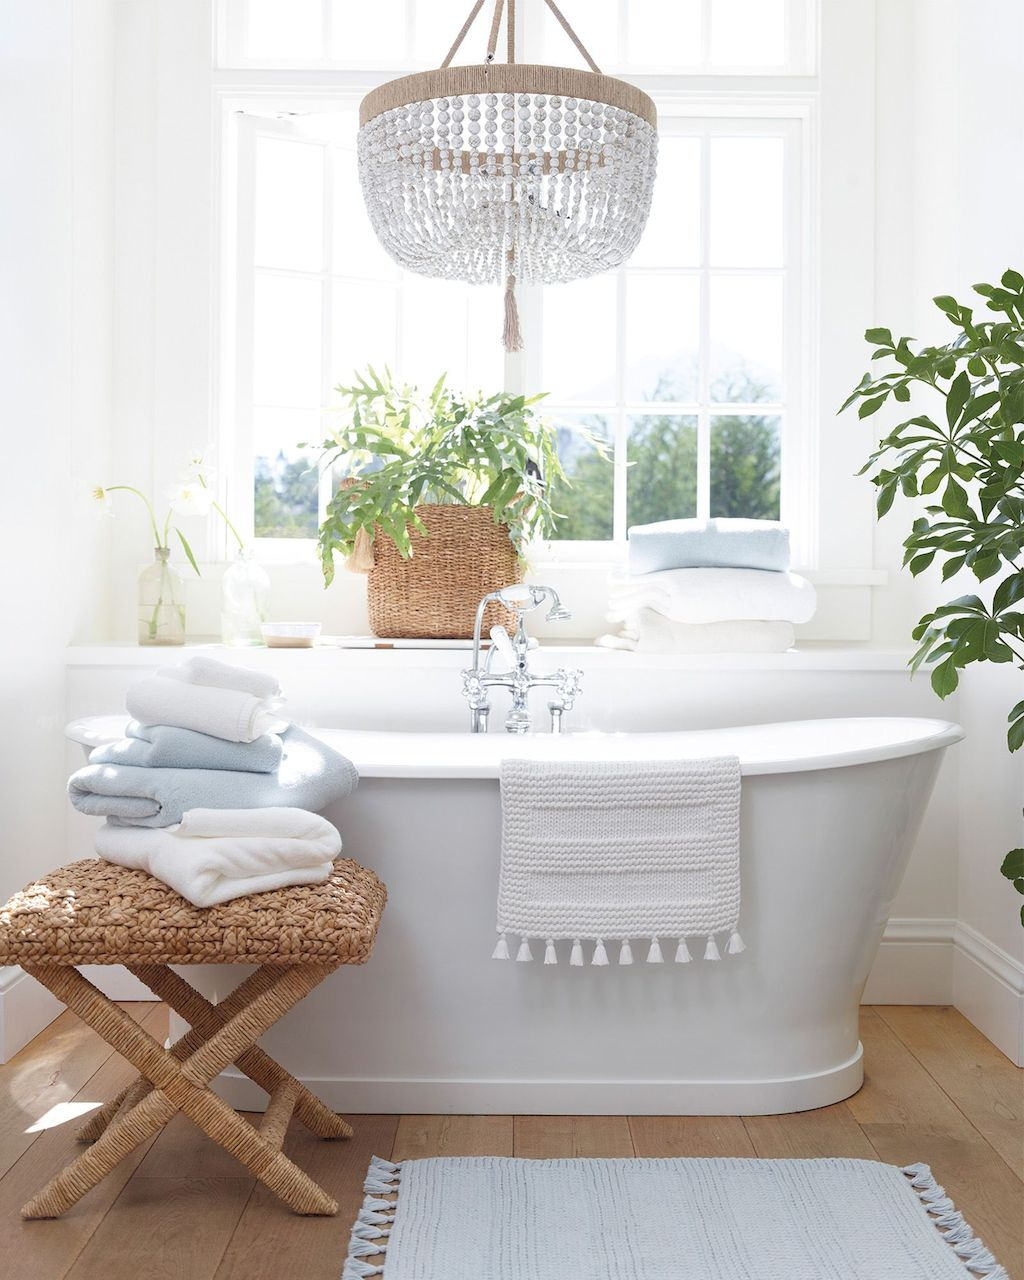 25 Small Standing Tub Designs For Tiny Spaces